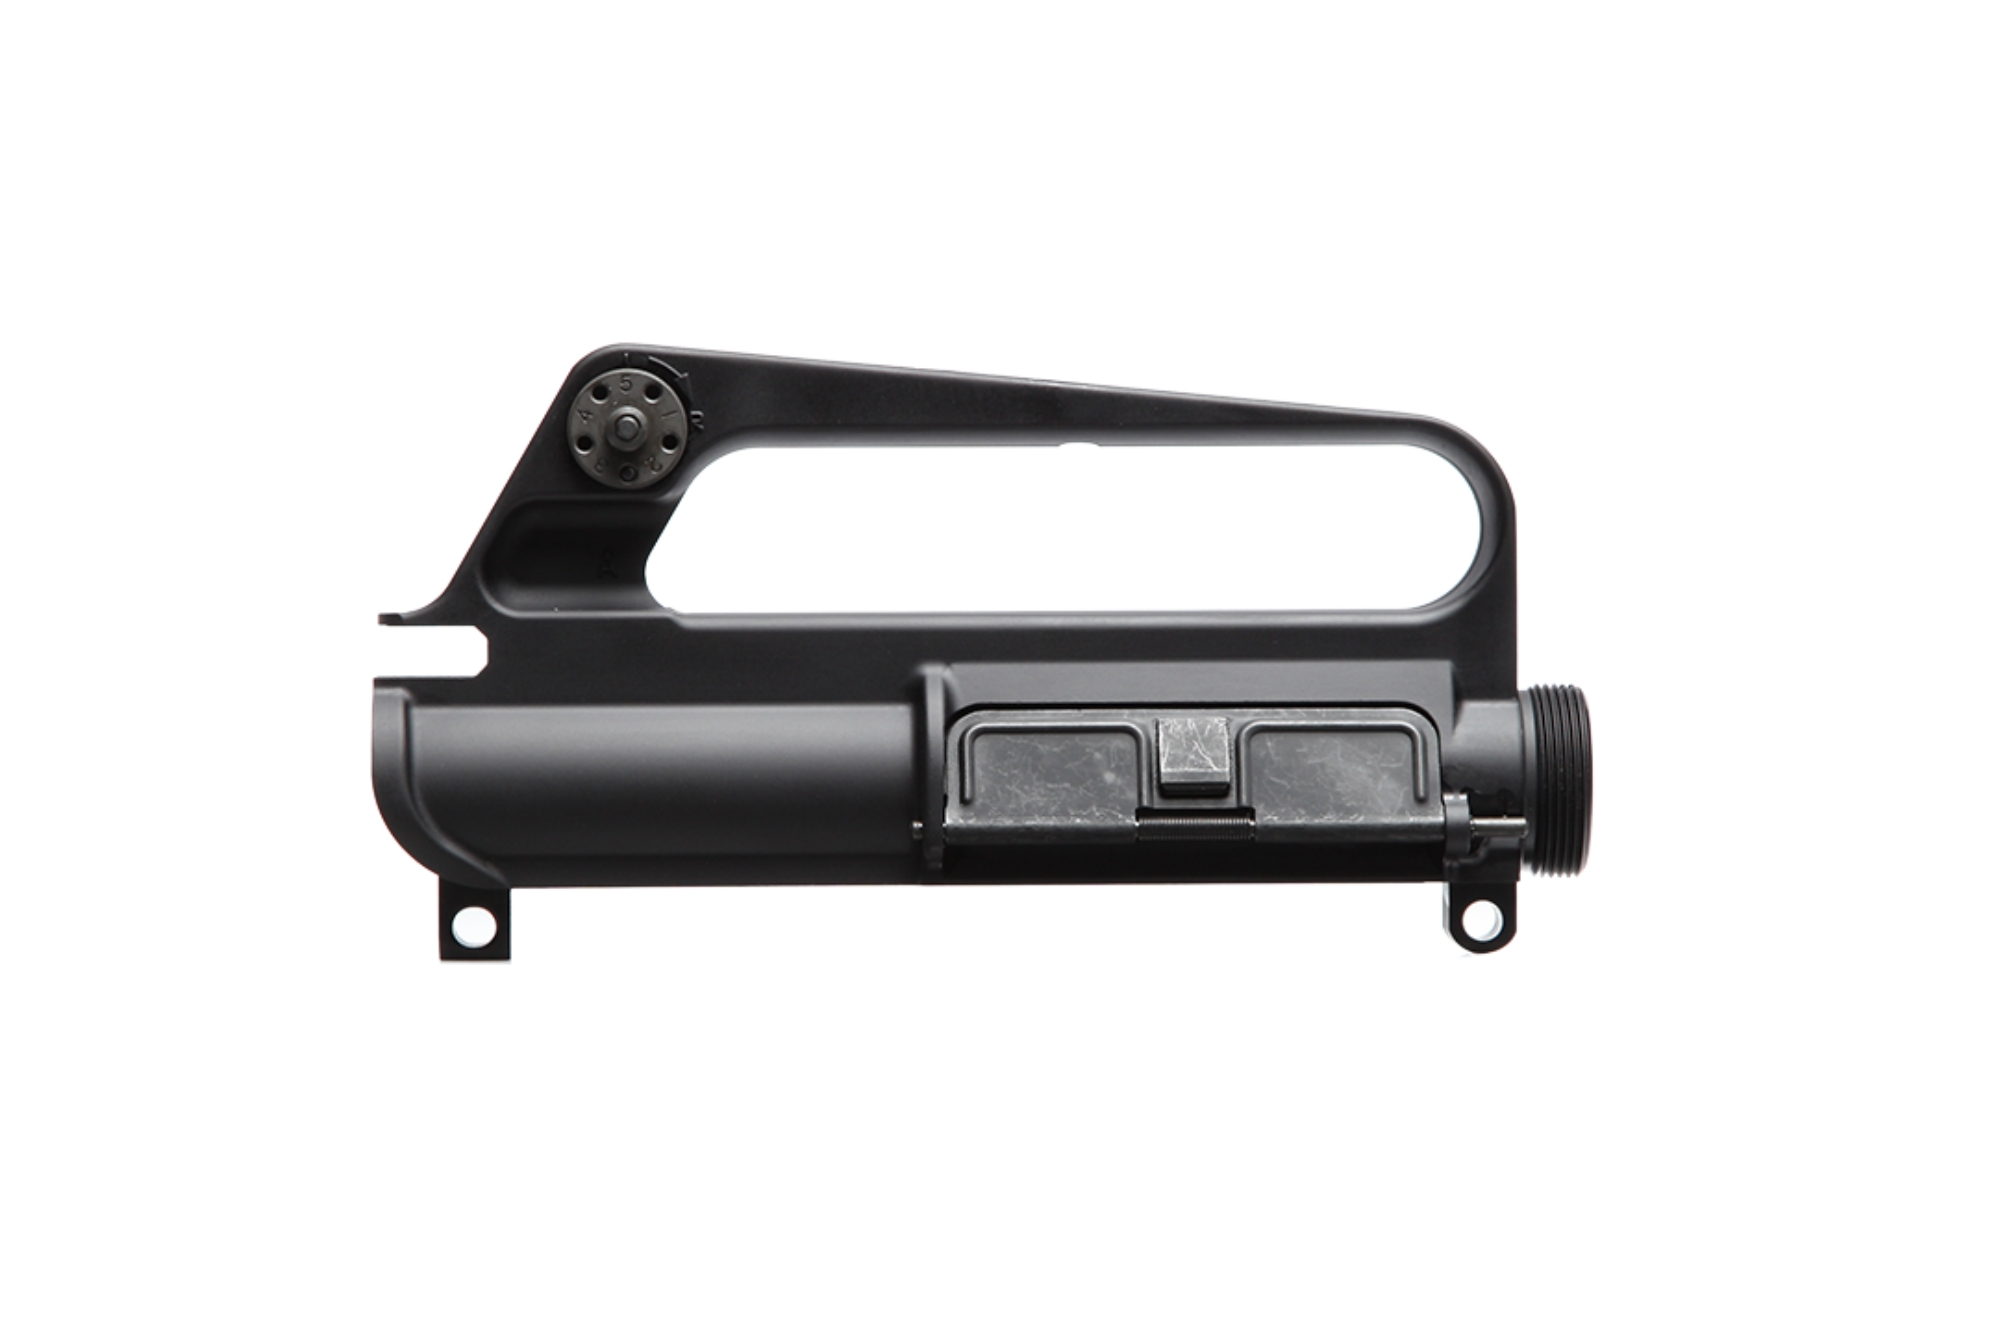 The A1 stripped upper receiver from DoubleStar